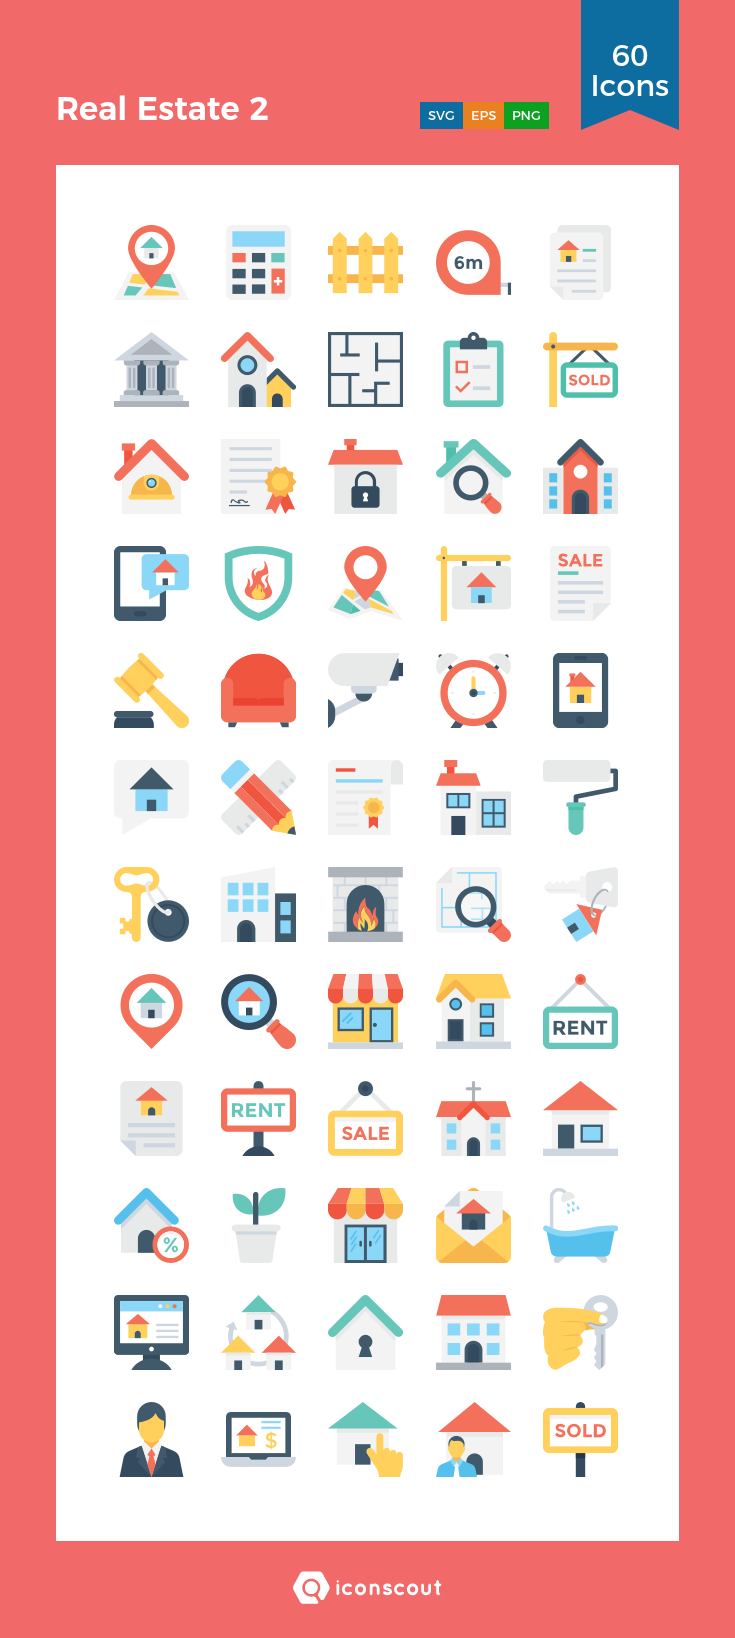 Download Real Estate 2 Icon pack Available in SVG, PNG